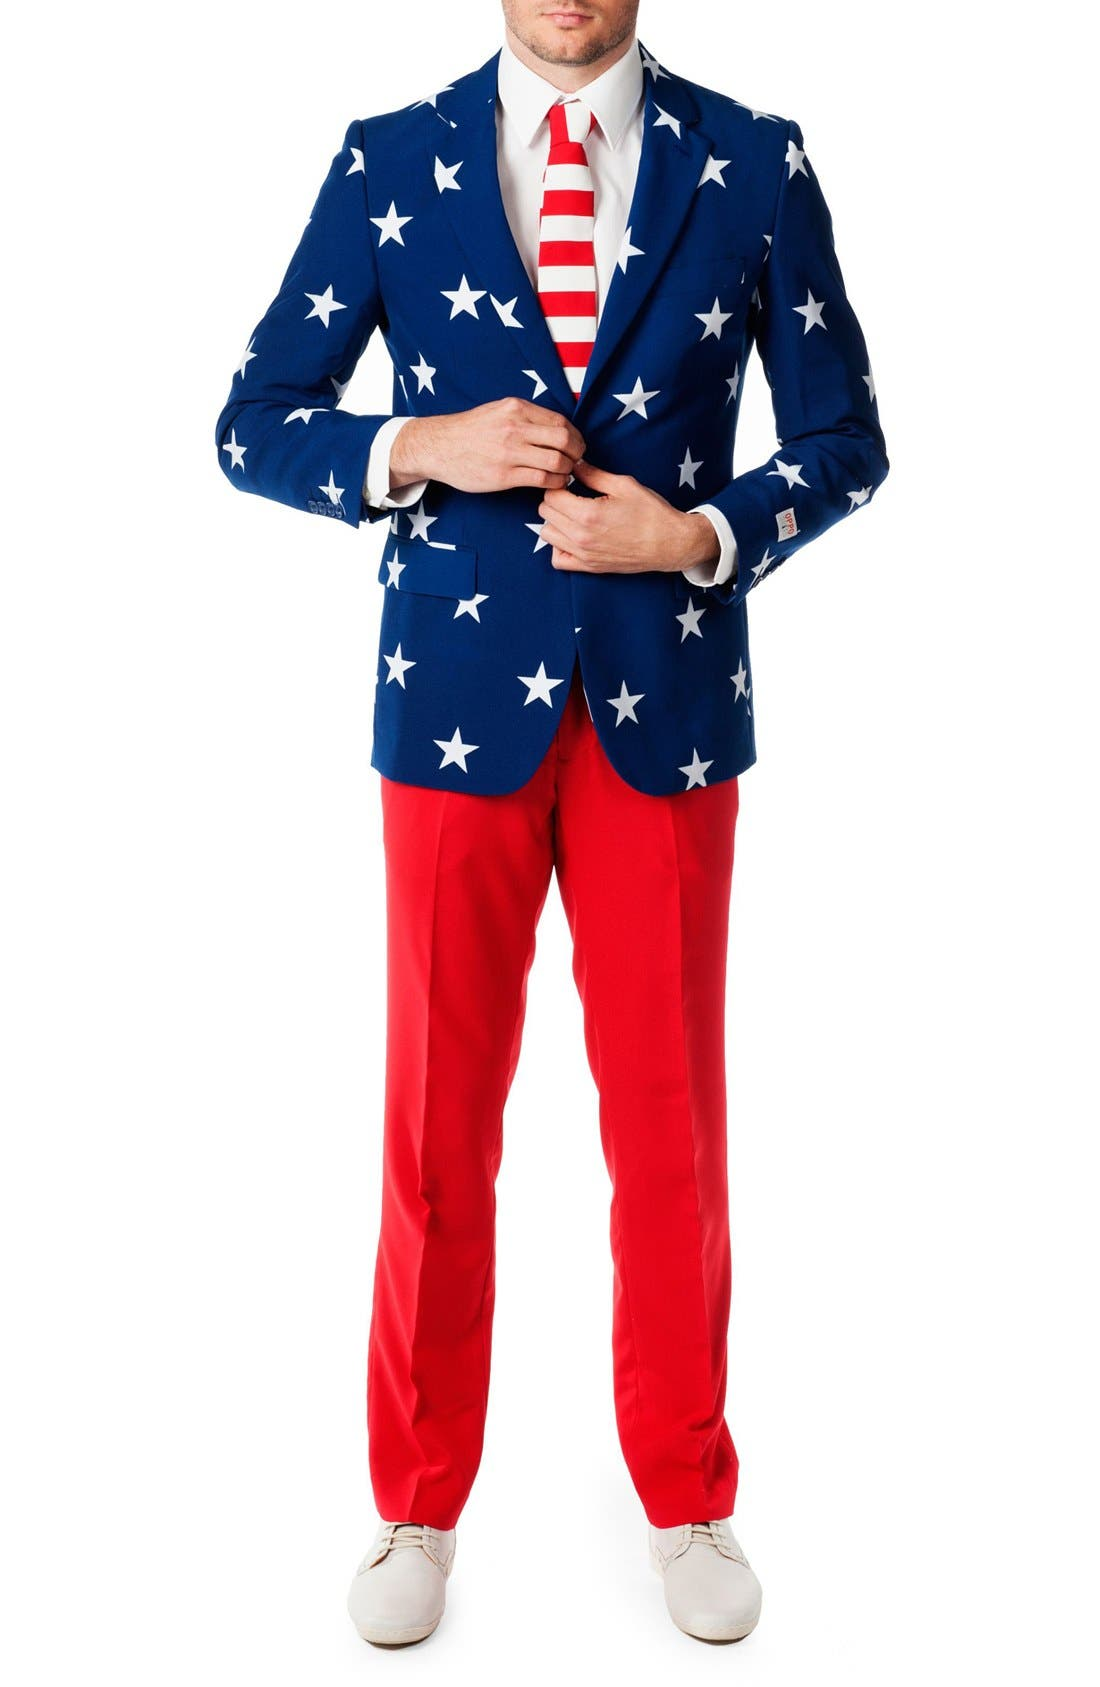 Main Image - OppoSuits 'Stars & Stripes' Trim Fit Suit with Tie